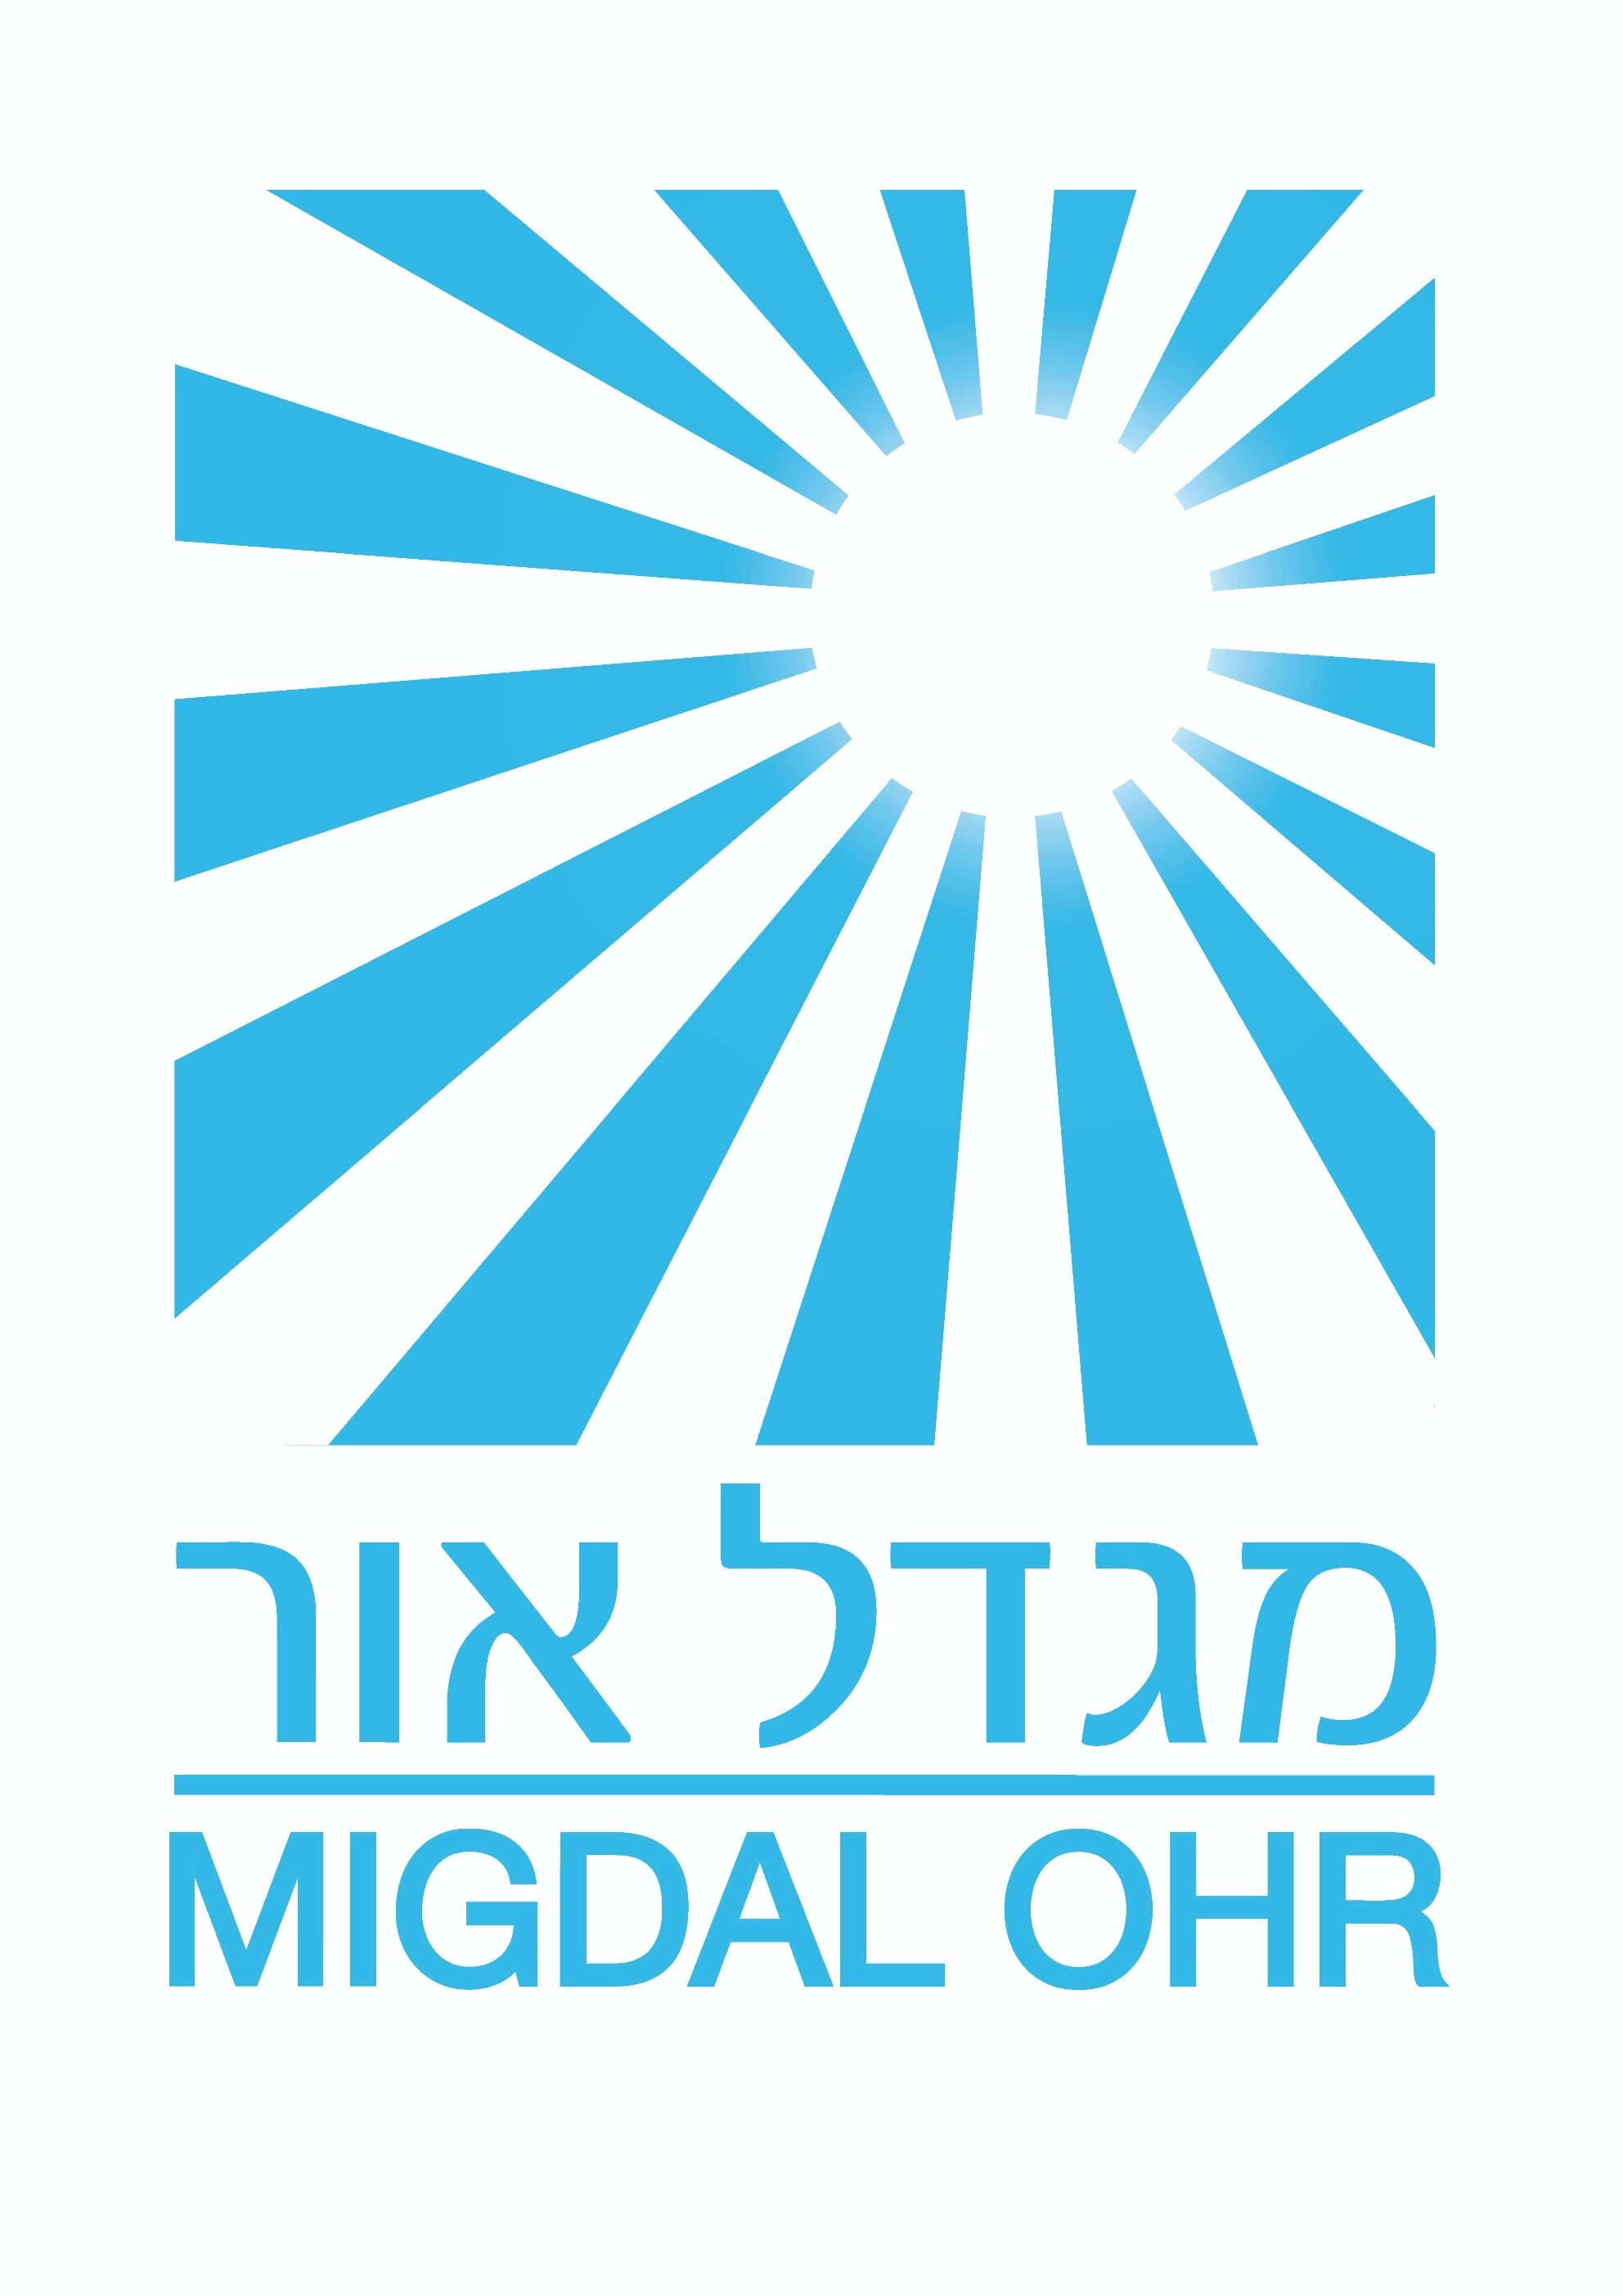 Graphic icon representing Migdal Ohr